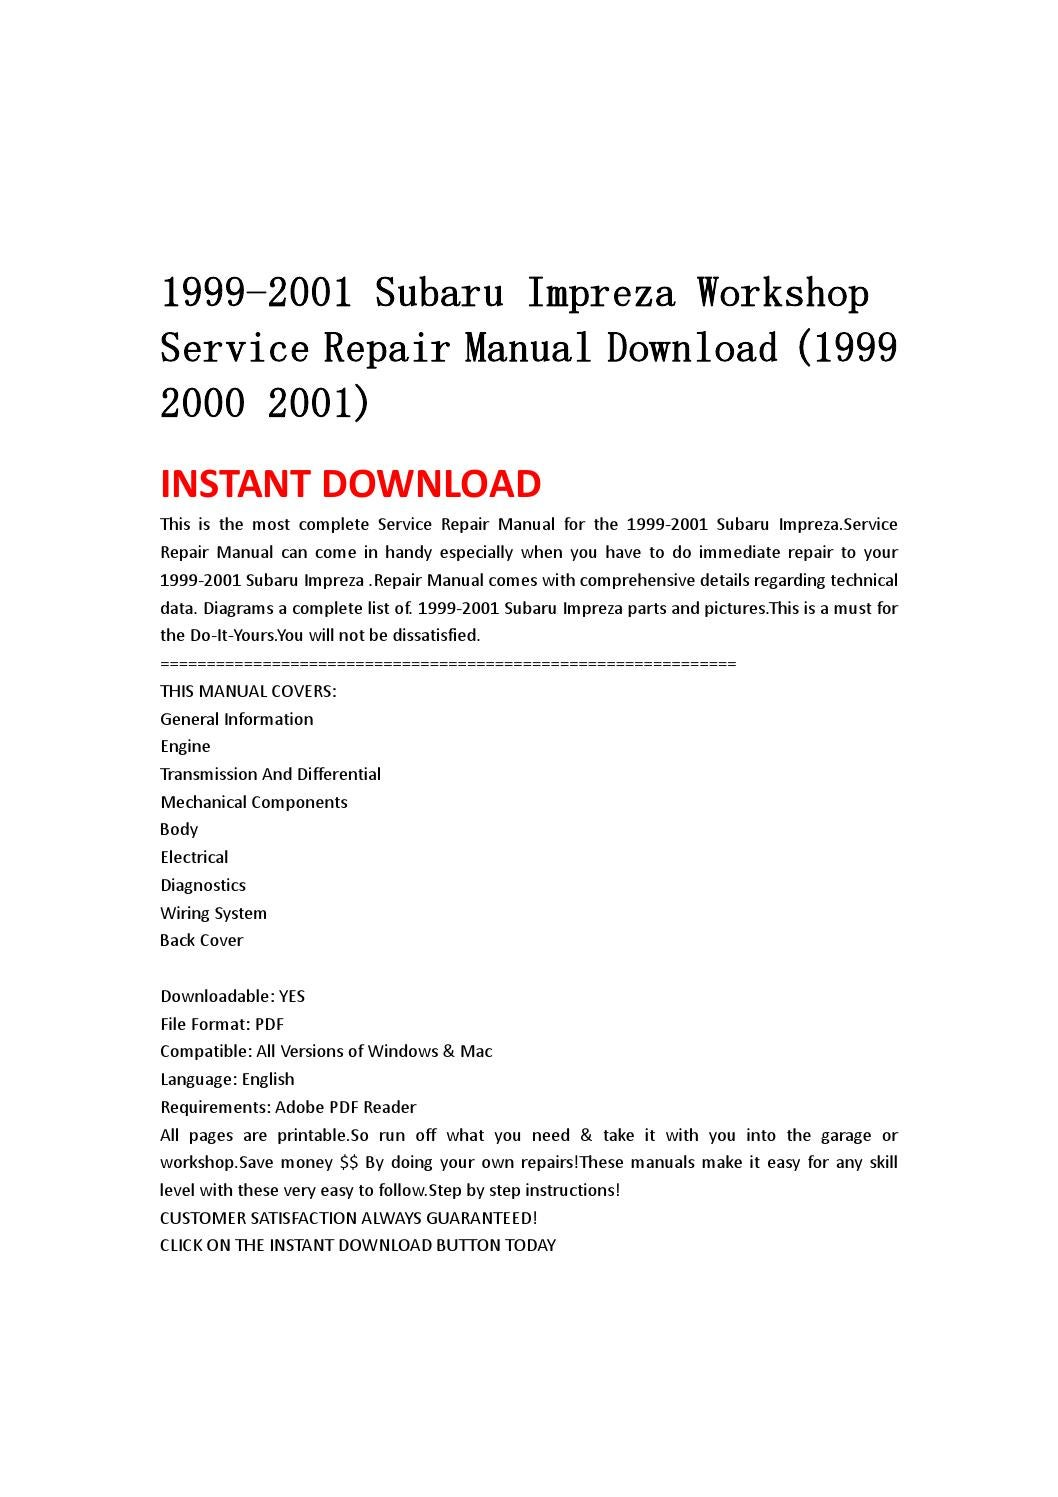 1999 2001 Subaru Impreza Workshop Service Repair Manual Download Parts Diagram 2000 By Kmsjefhn Issuu